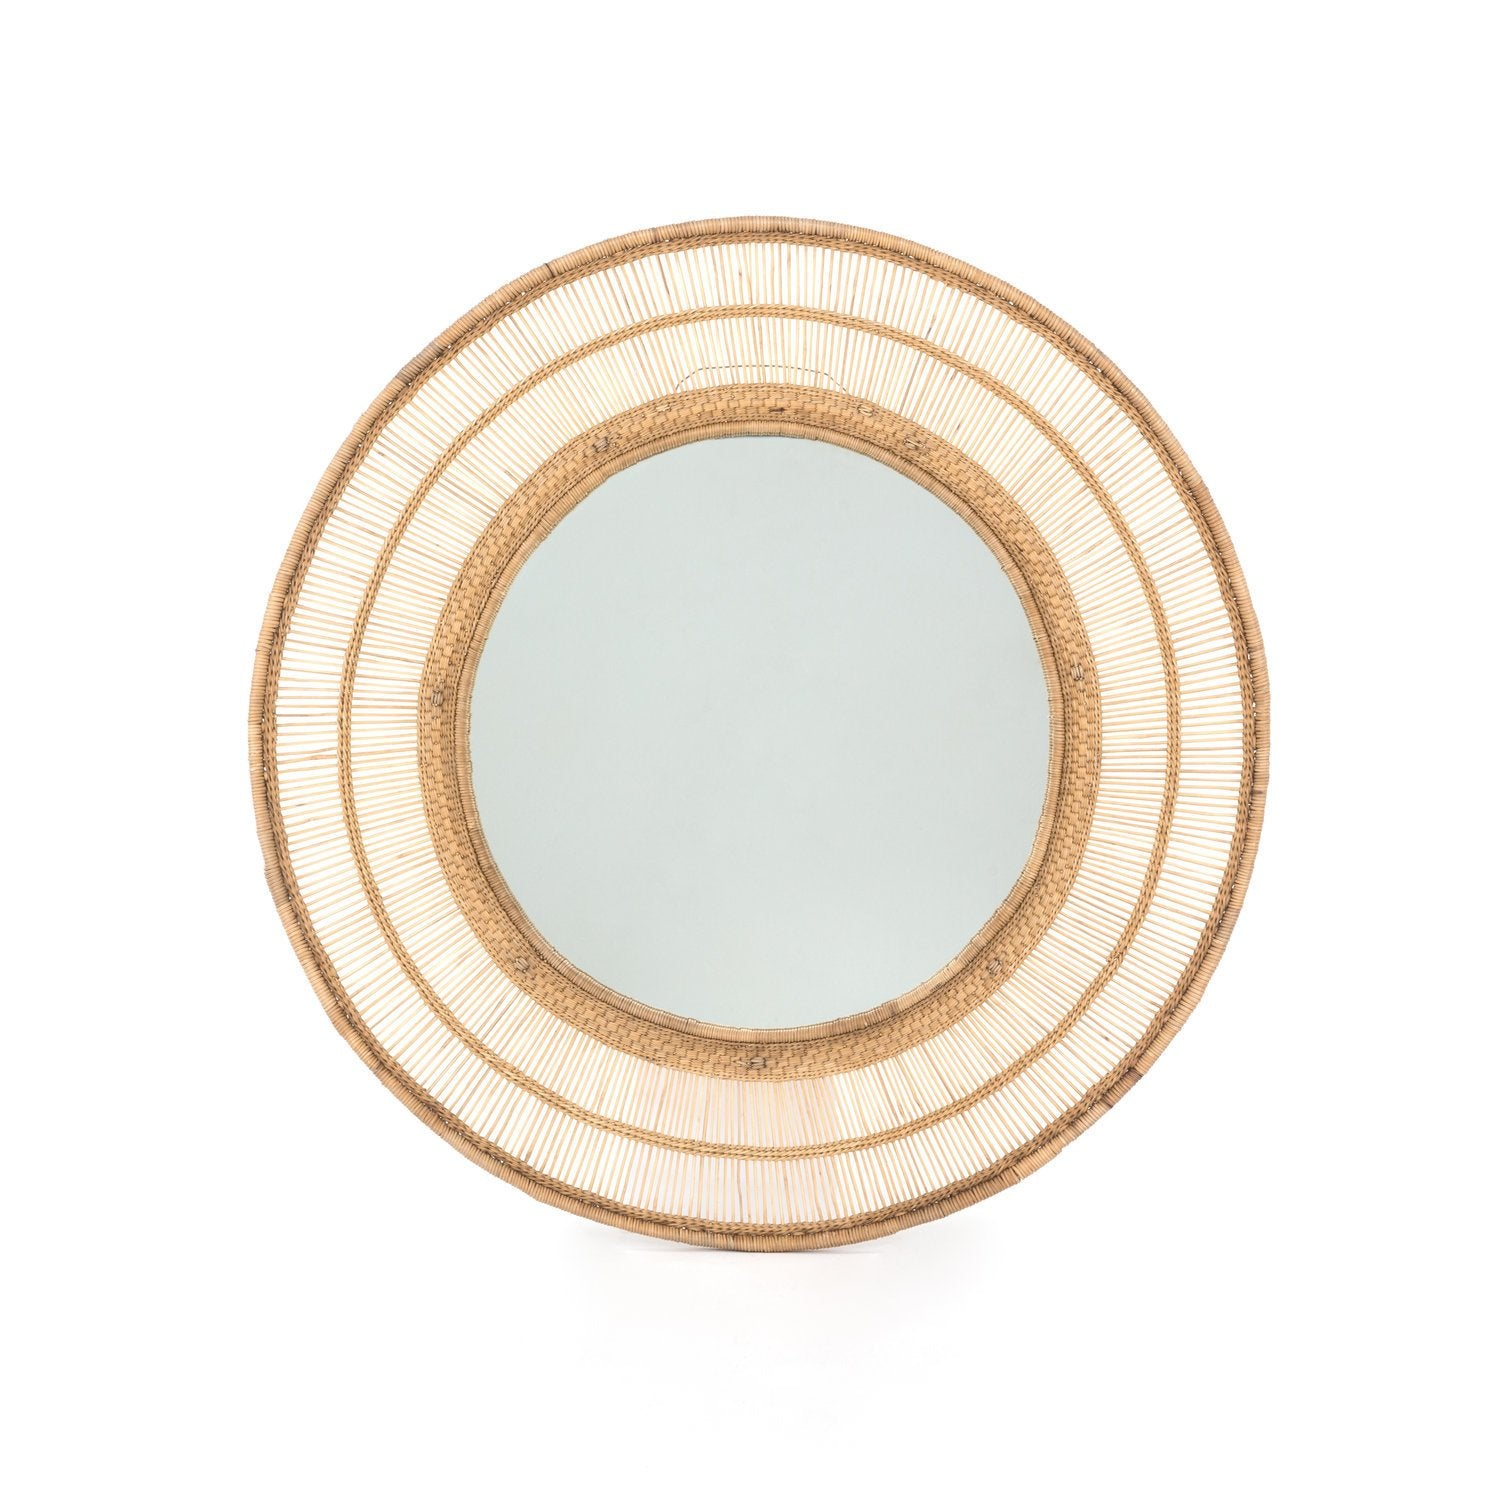 Malawi+Mirror+Circle+Natural_HR.jpg